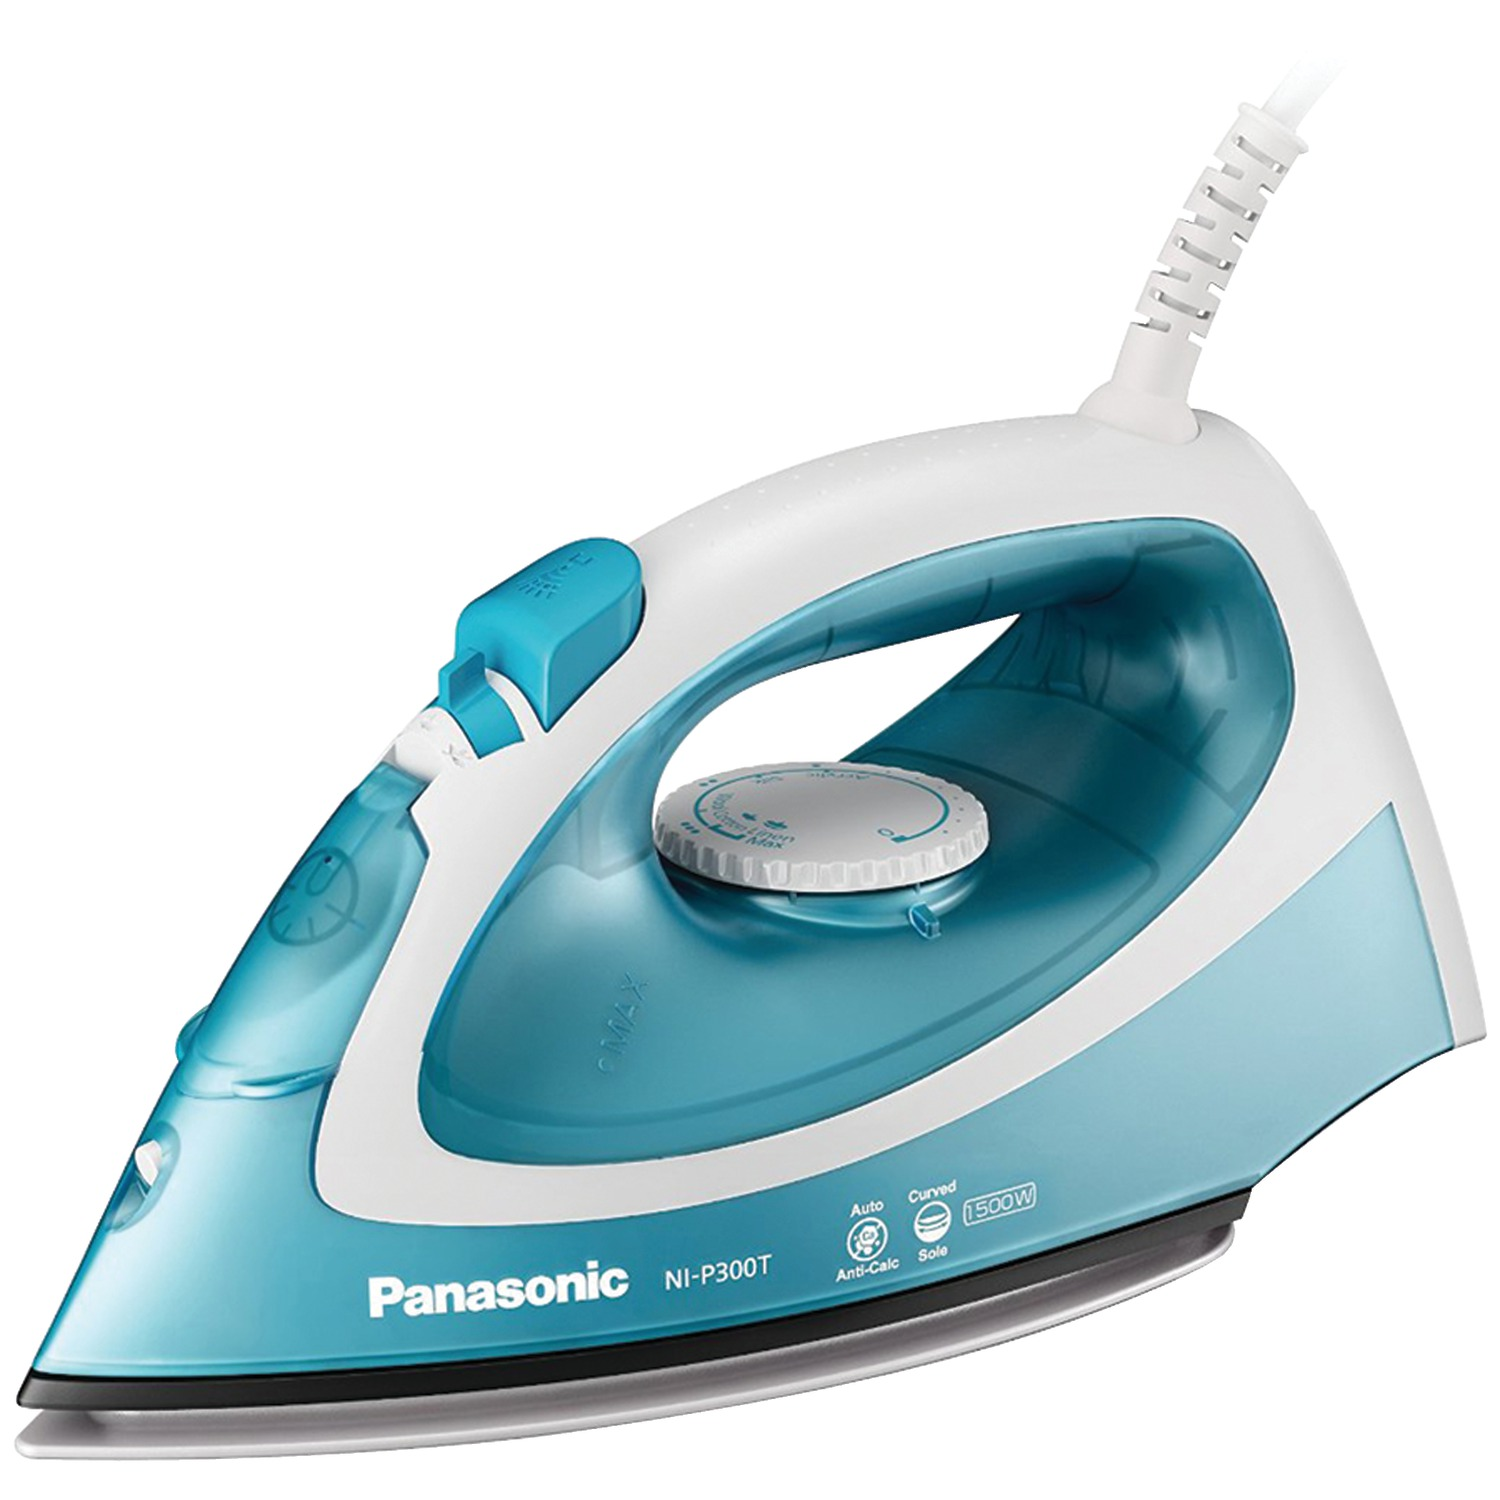 Image for Panasonic Speedy & Easy Ni-P300T - Steam Iron - Sole Plate: Titanium from Circuit City